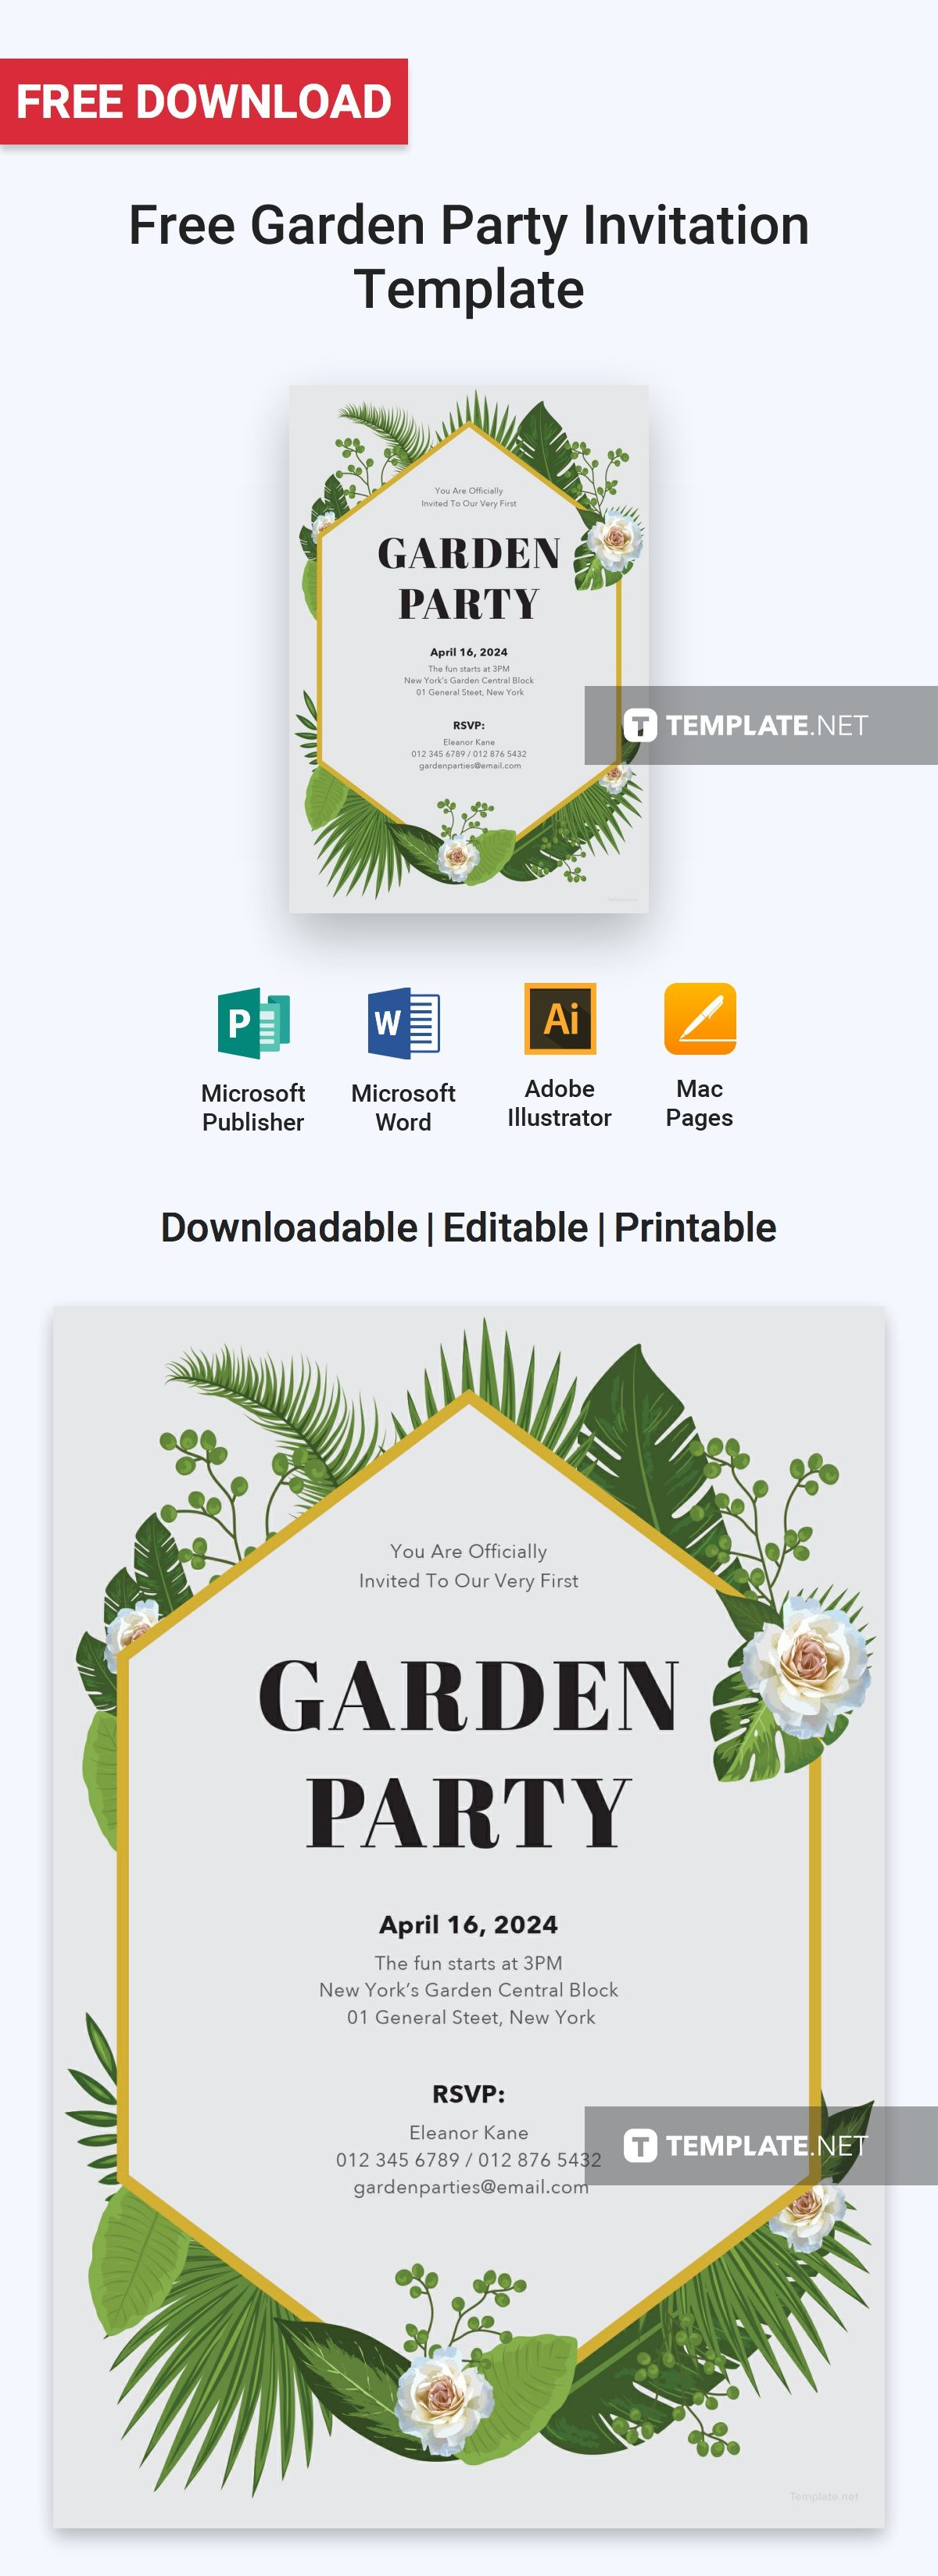 free garden party invitation invitation templates designs 2019